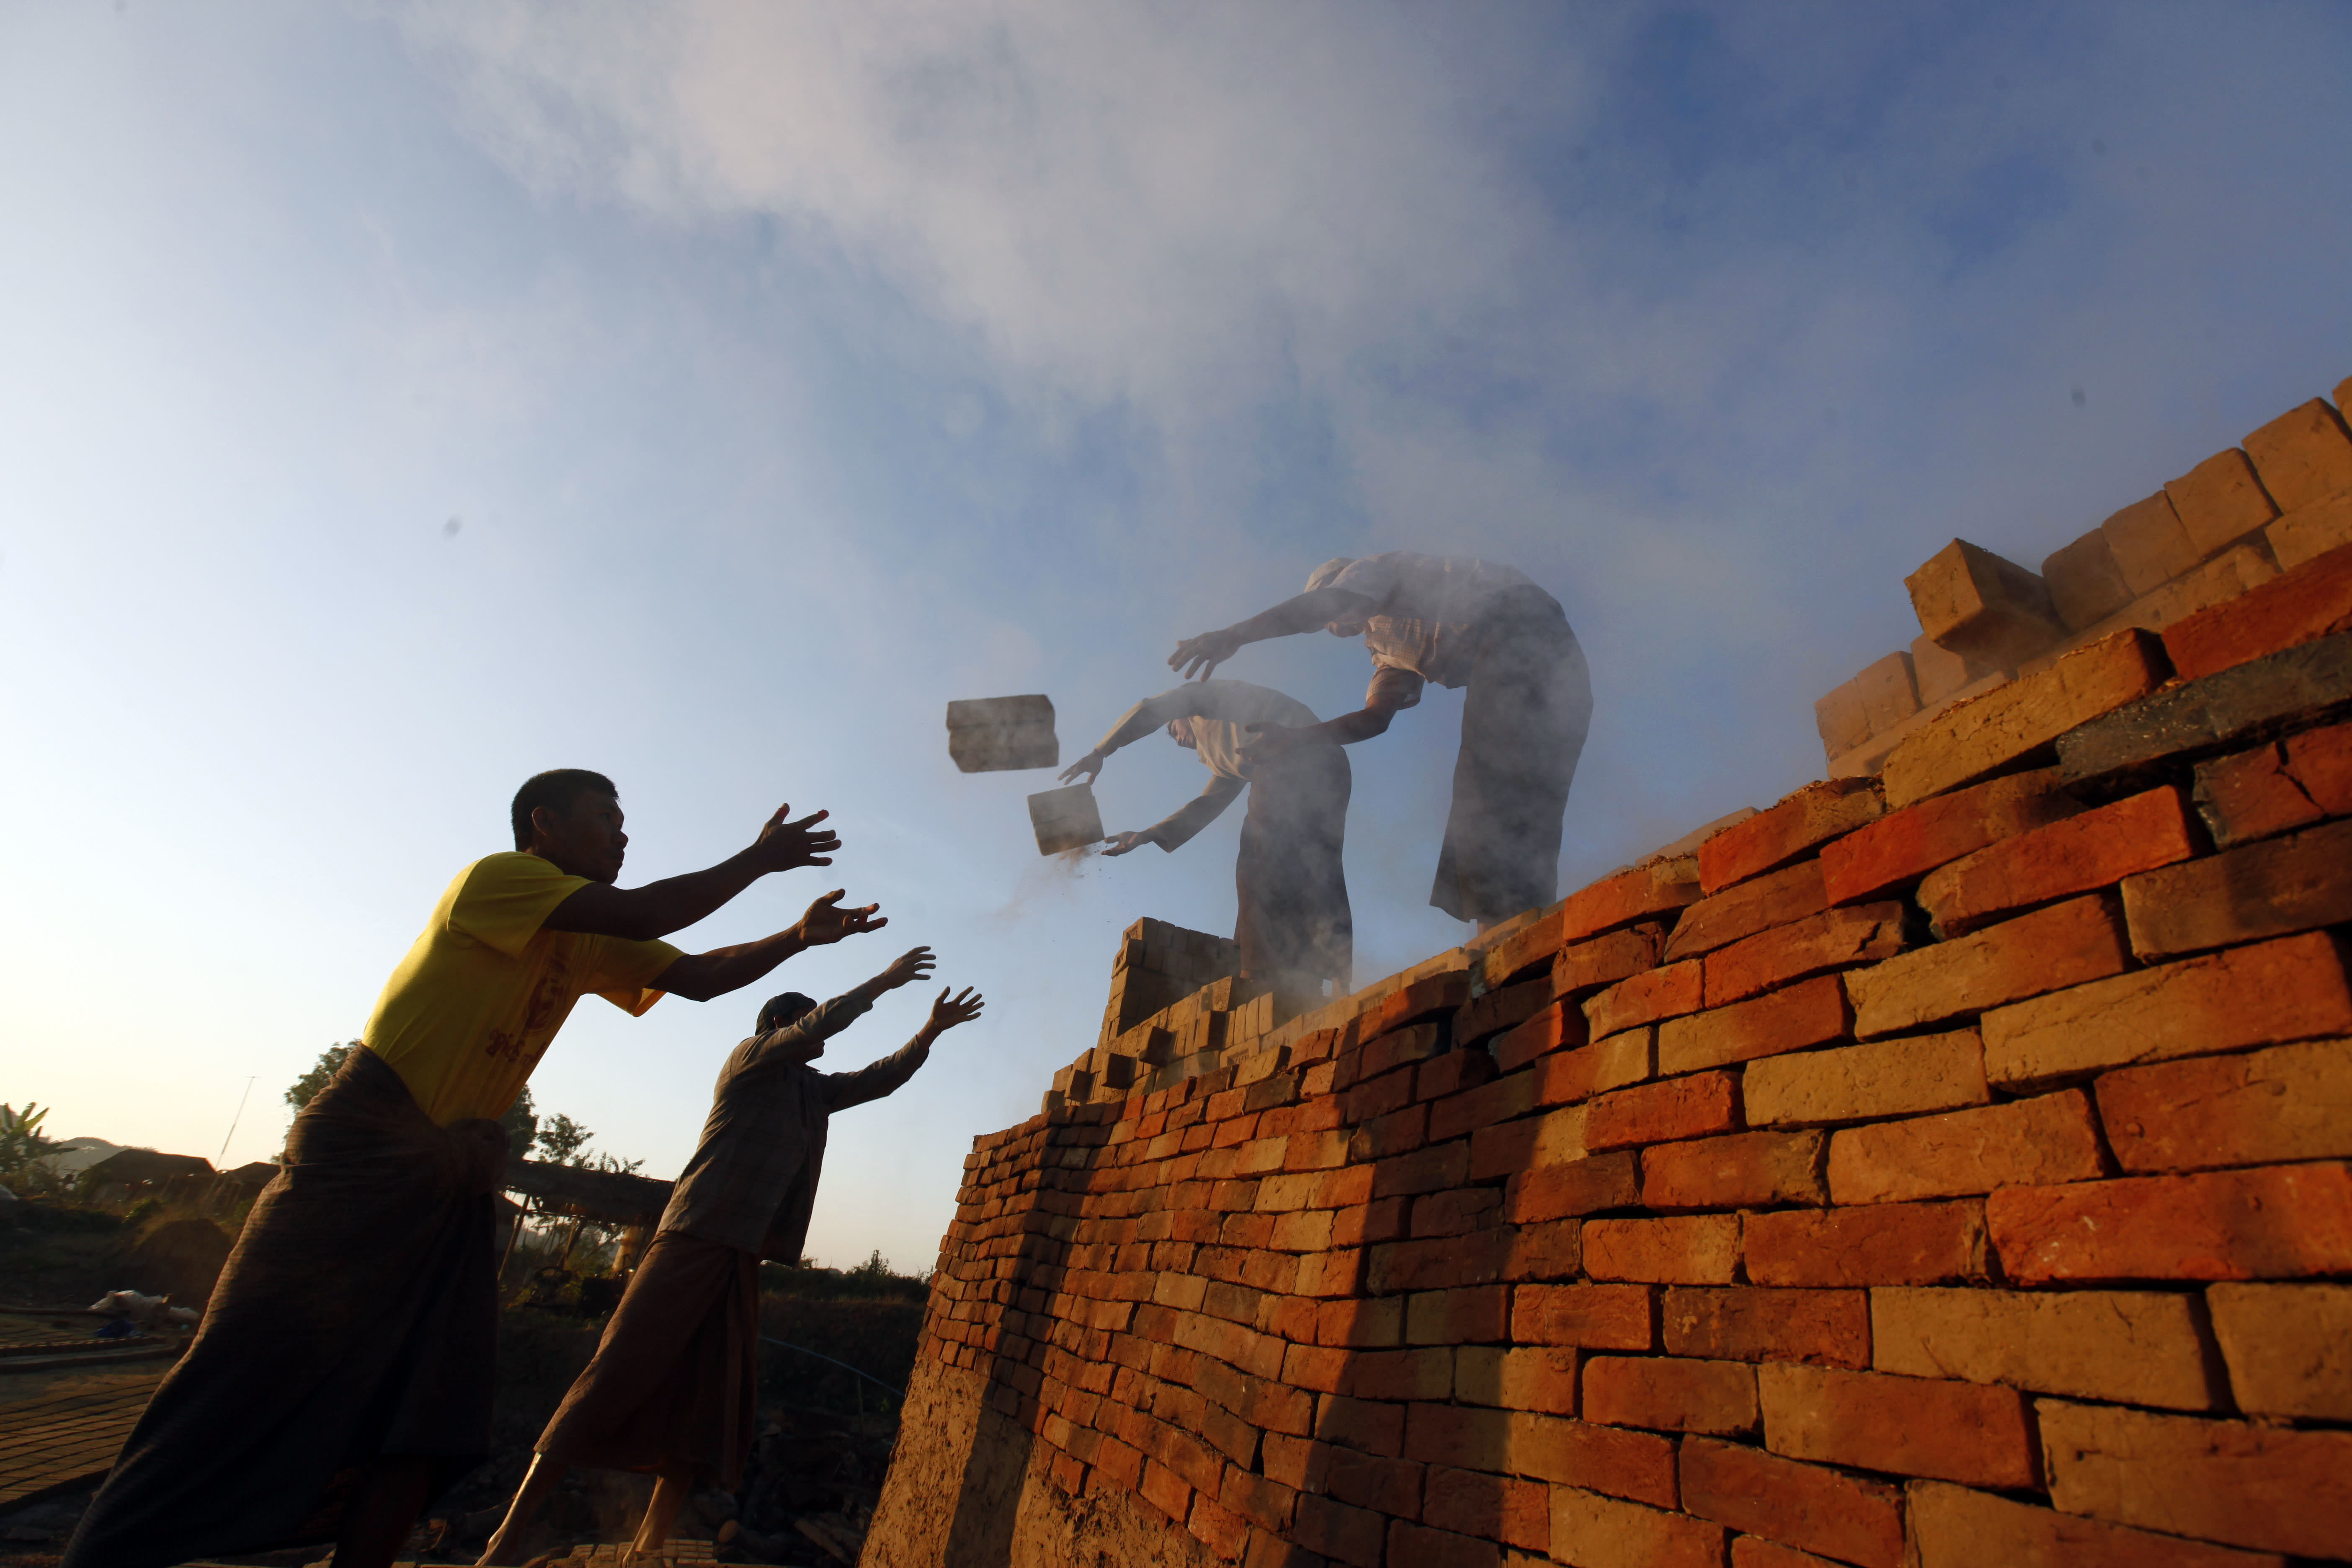 Stark inequality: Oxfam says 8 men as rich as half the world